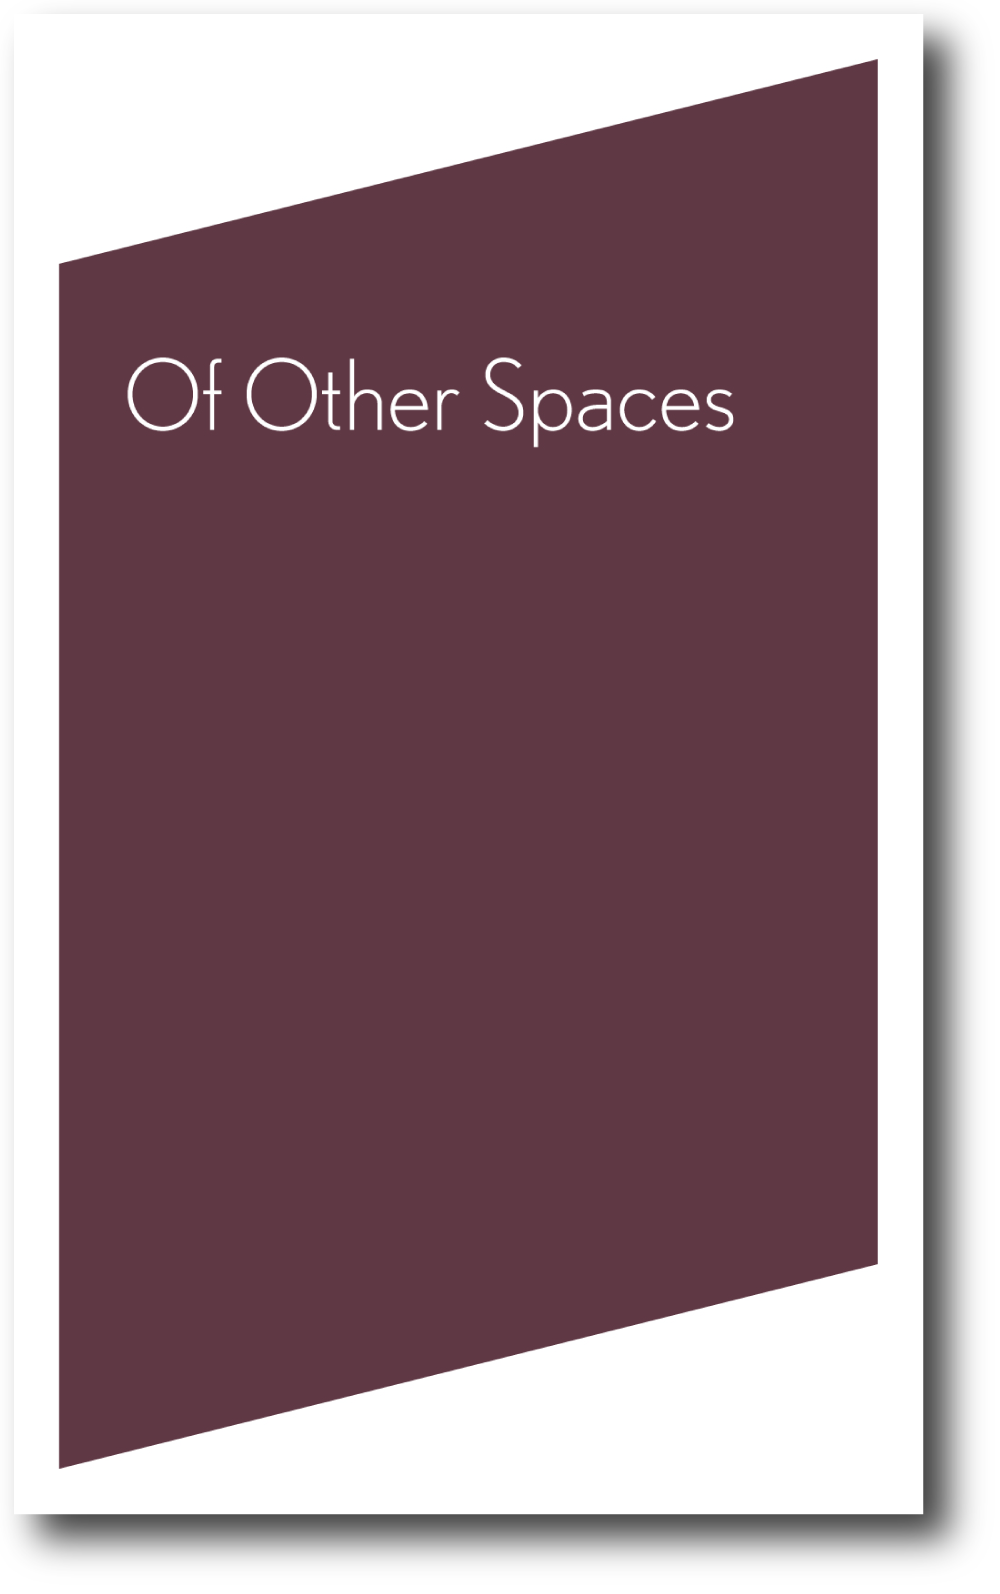 BOC-Publication-Of-Other-Spaces-cover.png